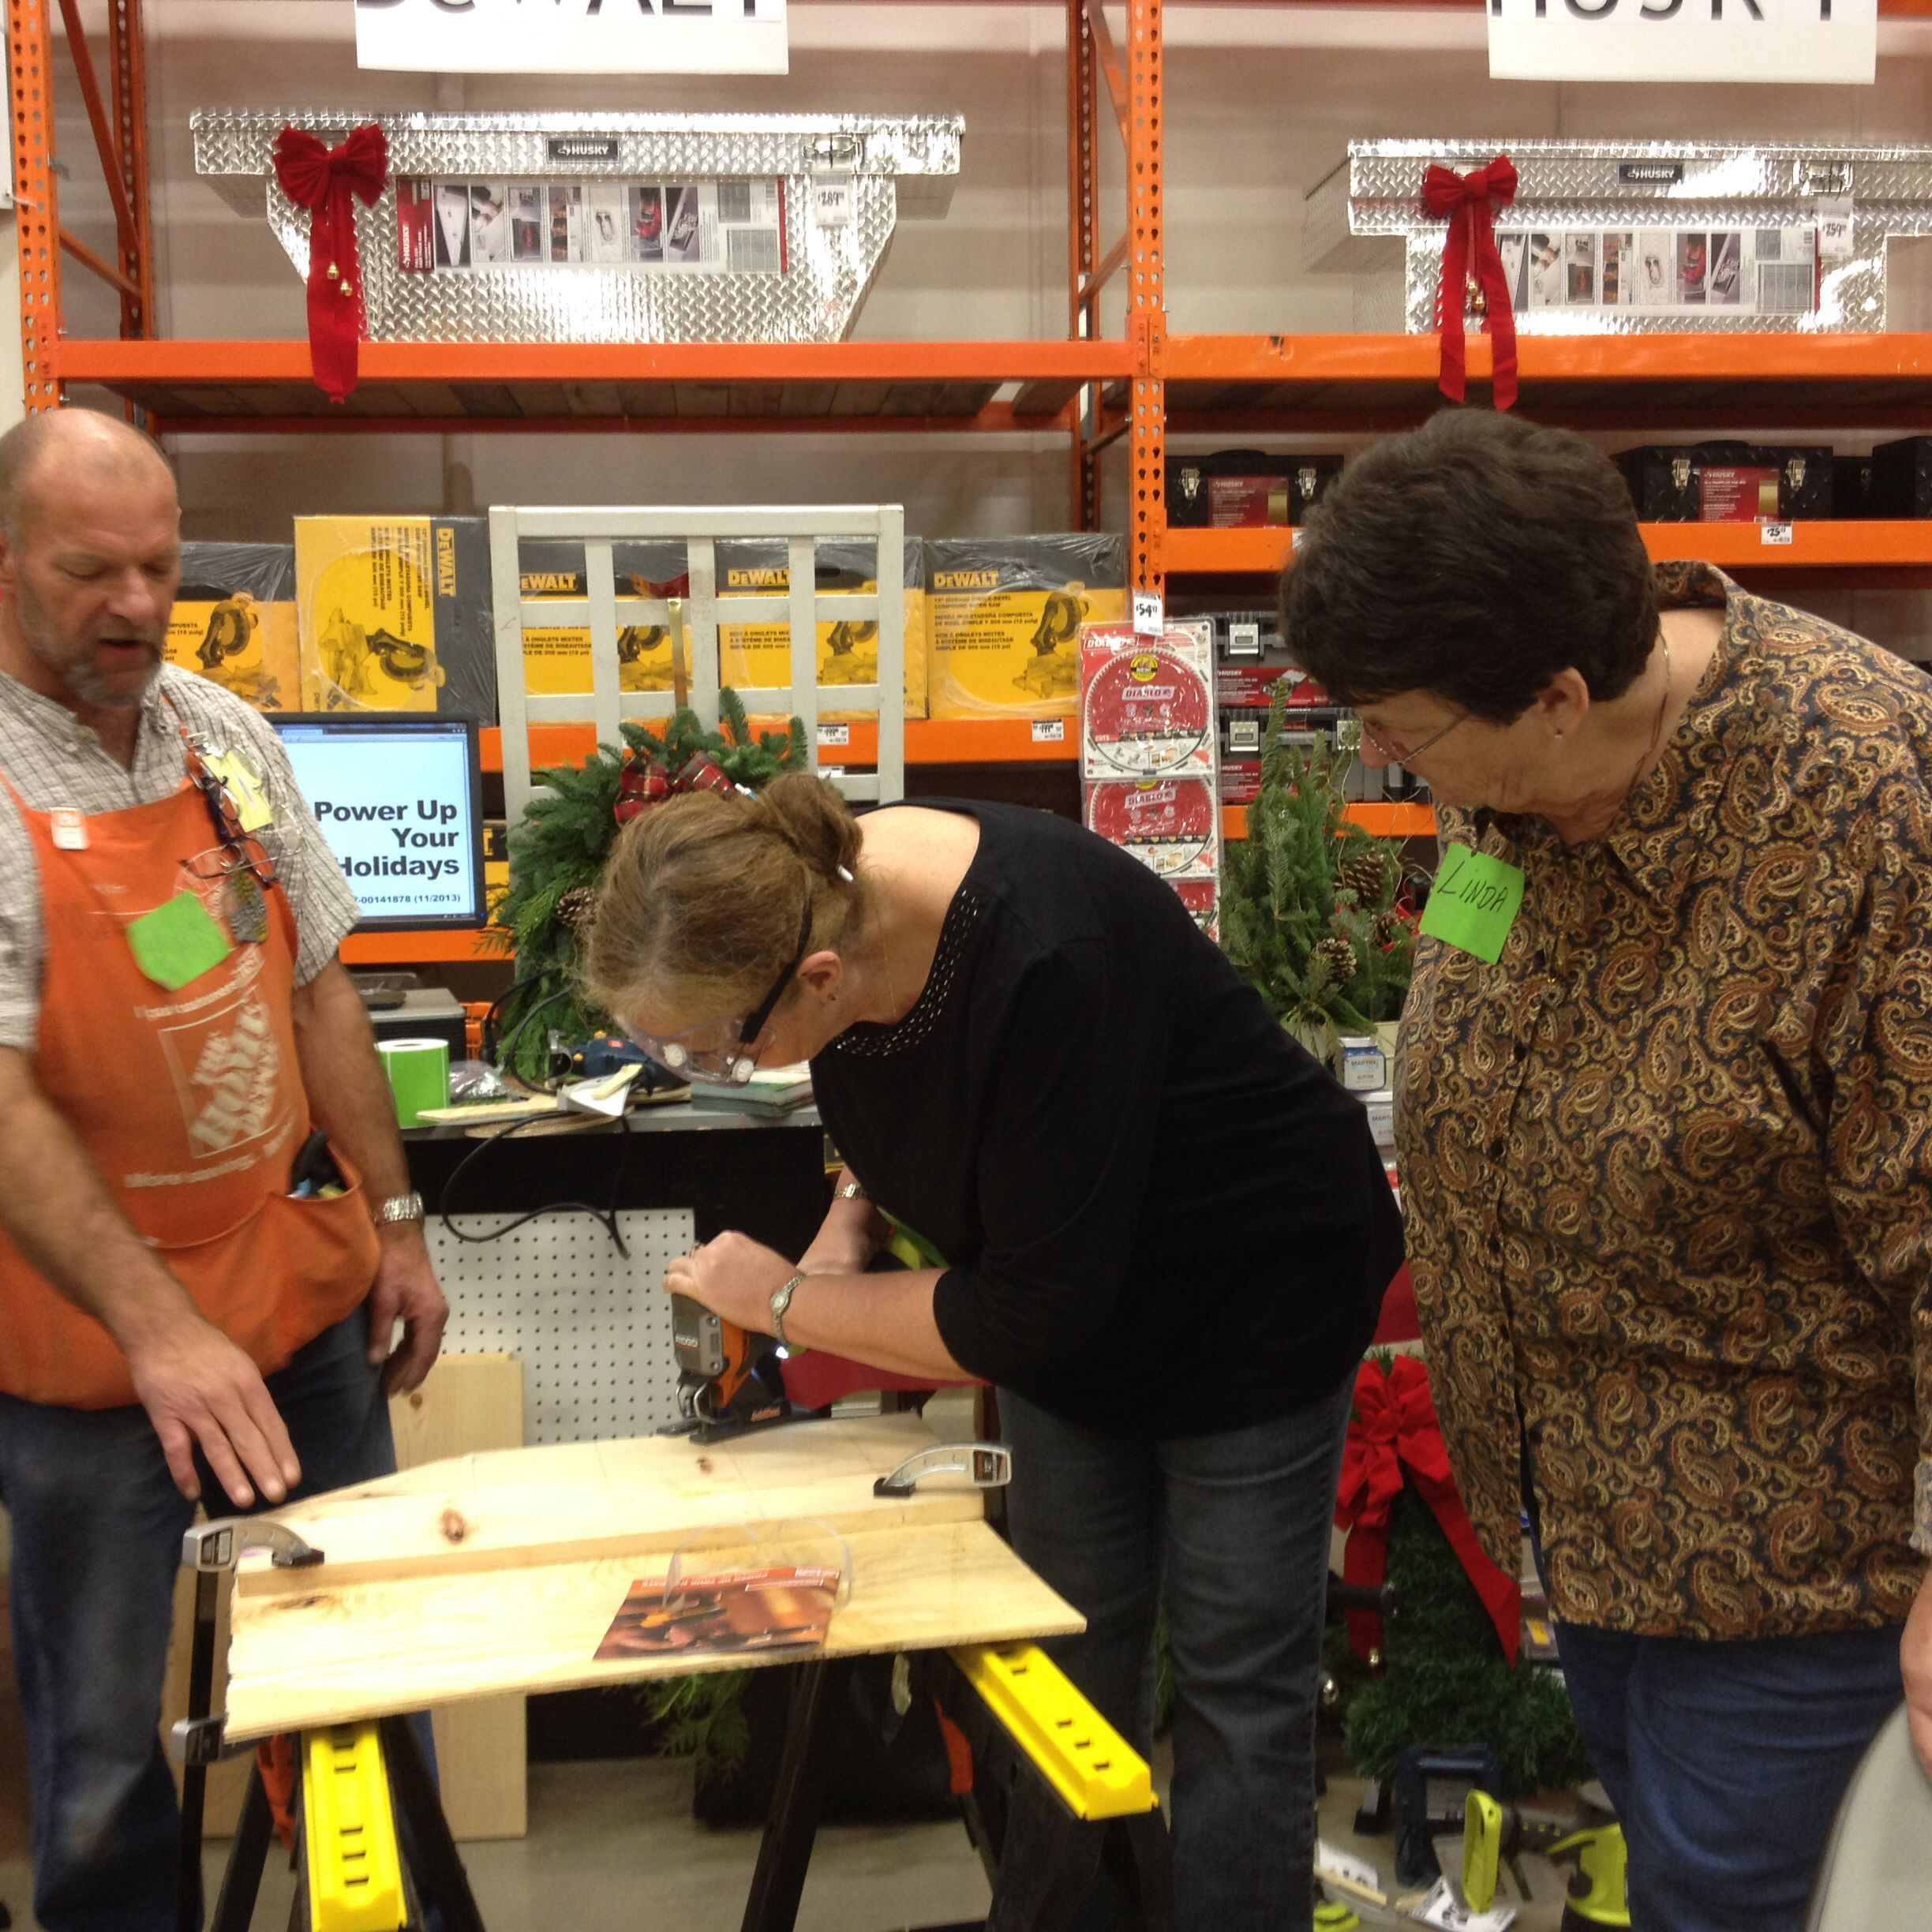 November 2013 DIH learning how to use power tools